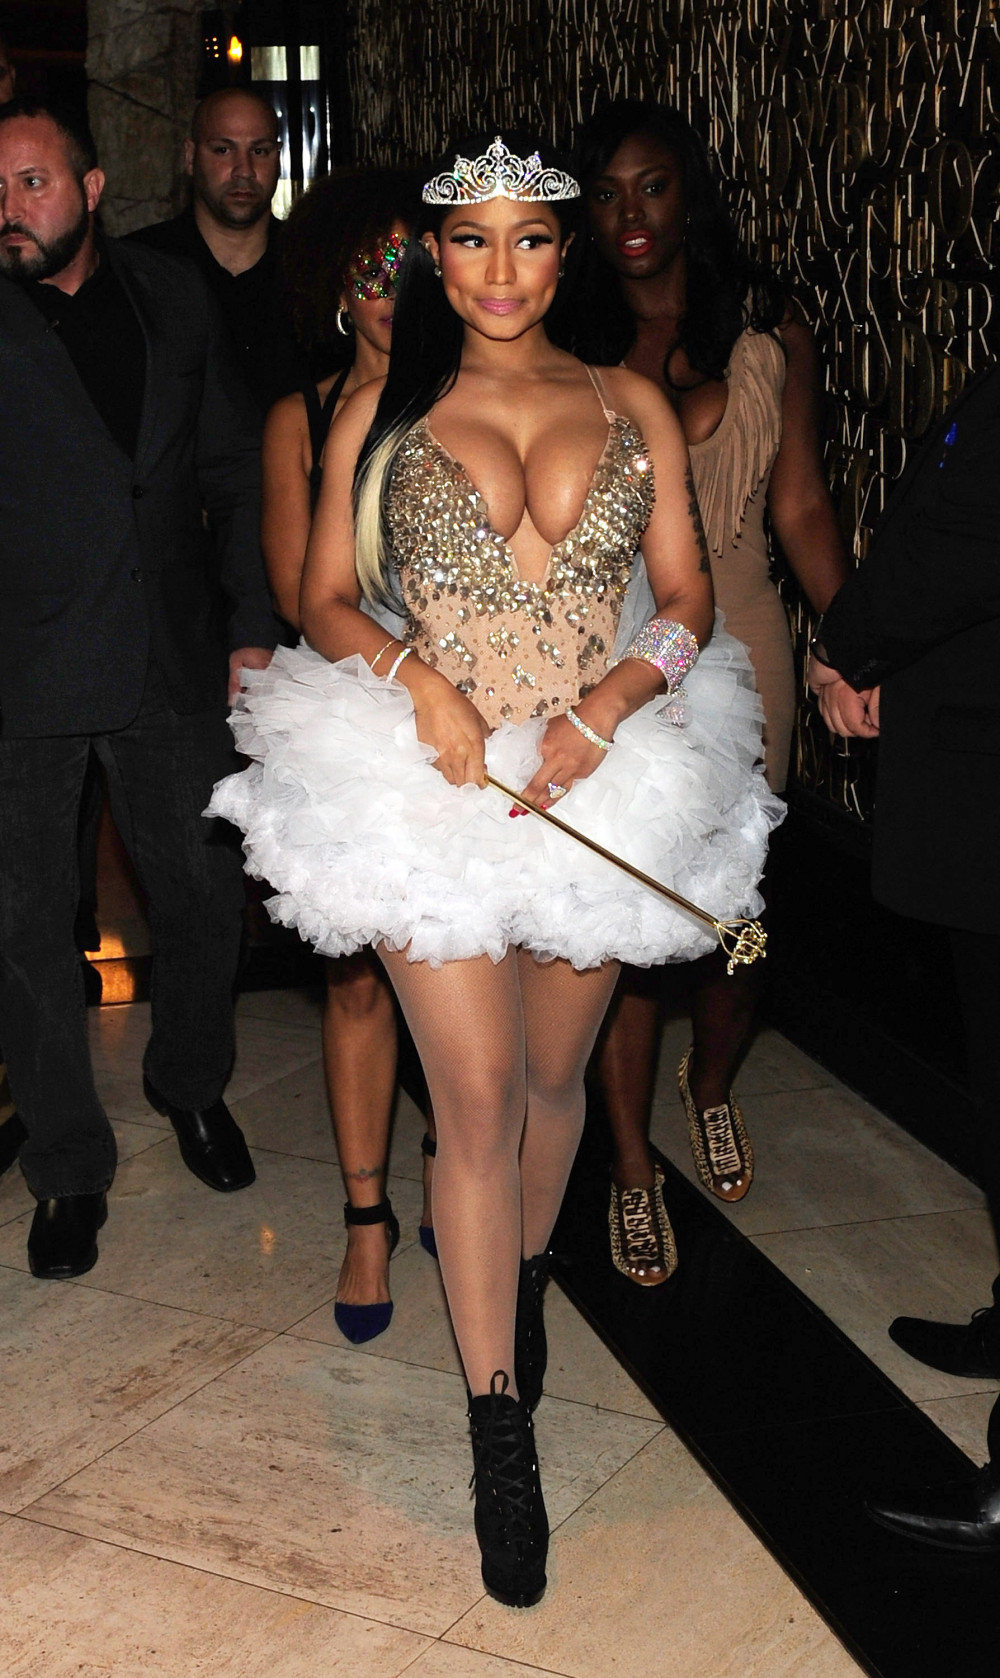 LAS VEGAS, NV - OCTOBER 31: Recording artist Nicki Minaj attends a Haunted Funhouse Halloween party at 1 OAK Nightclub at The Mirage Hotel & Casino on October 31, 2015 in Las Vegas, Nevada. (Photo by Steven Lawton/Getty Images)